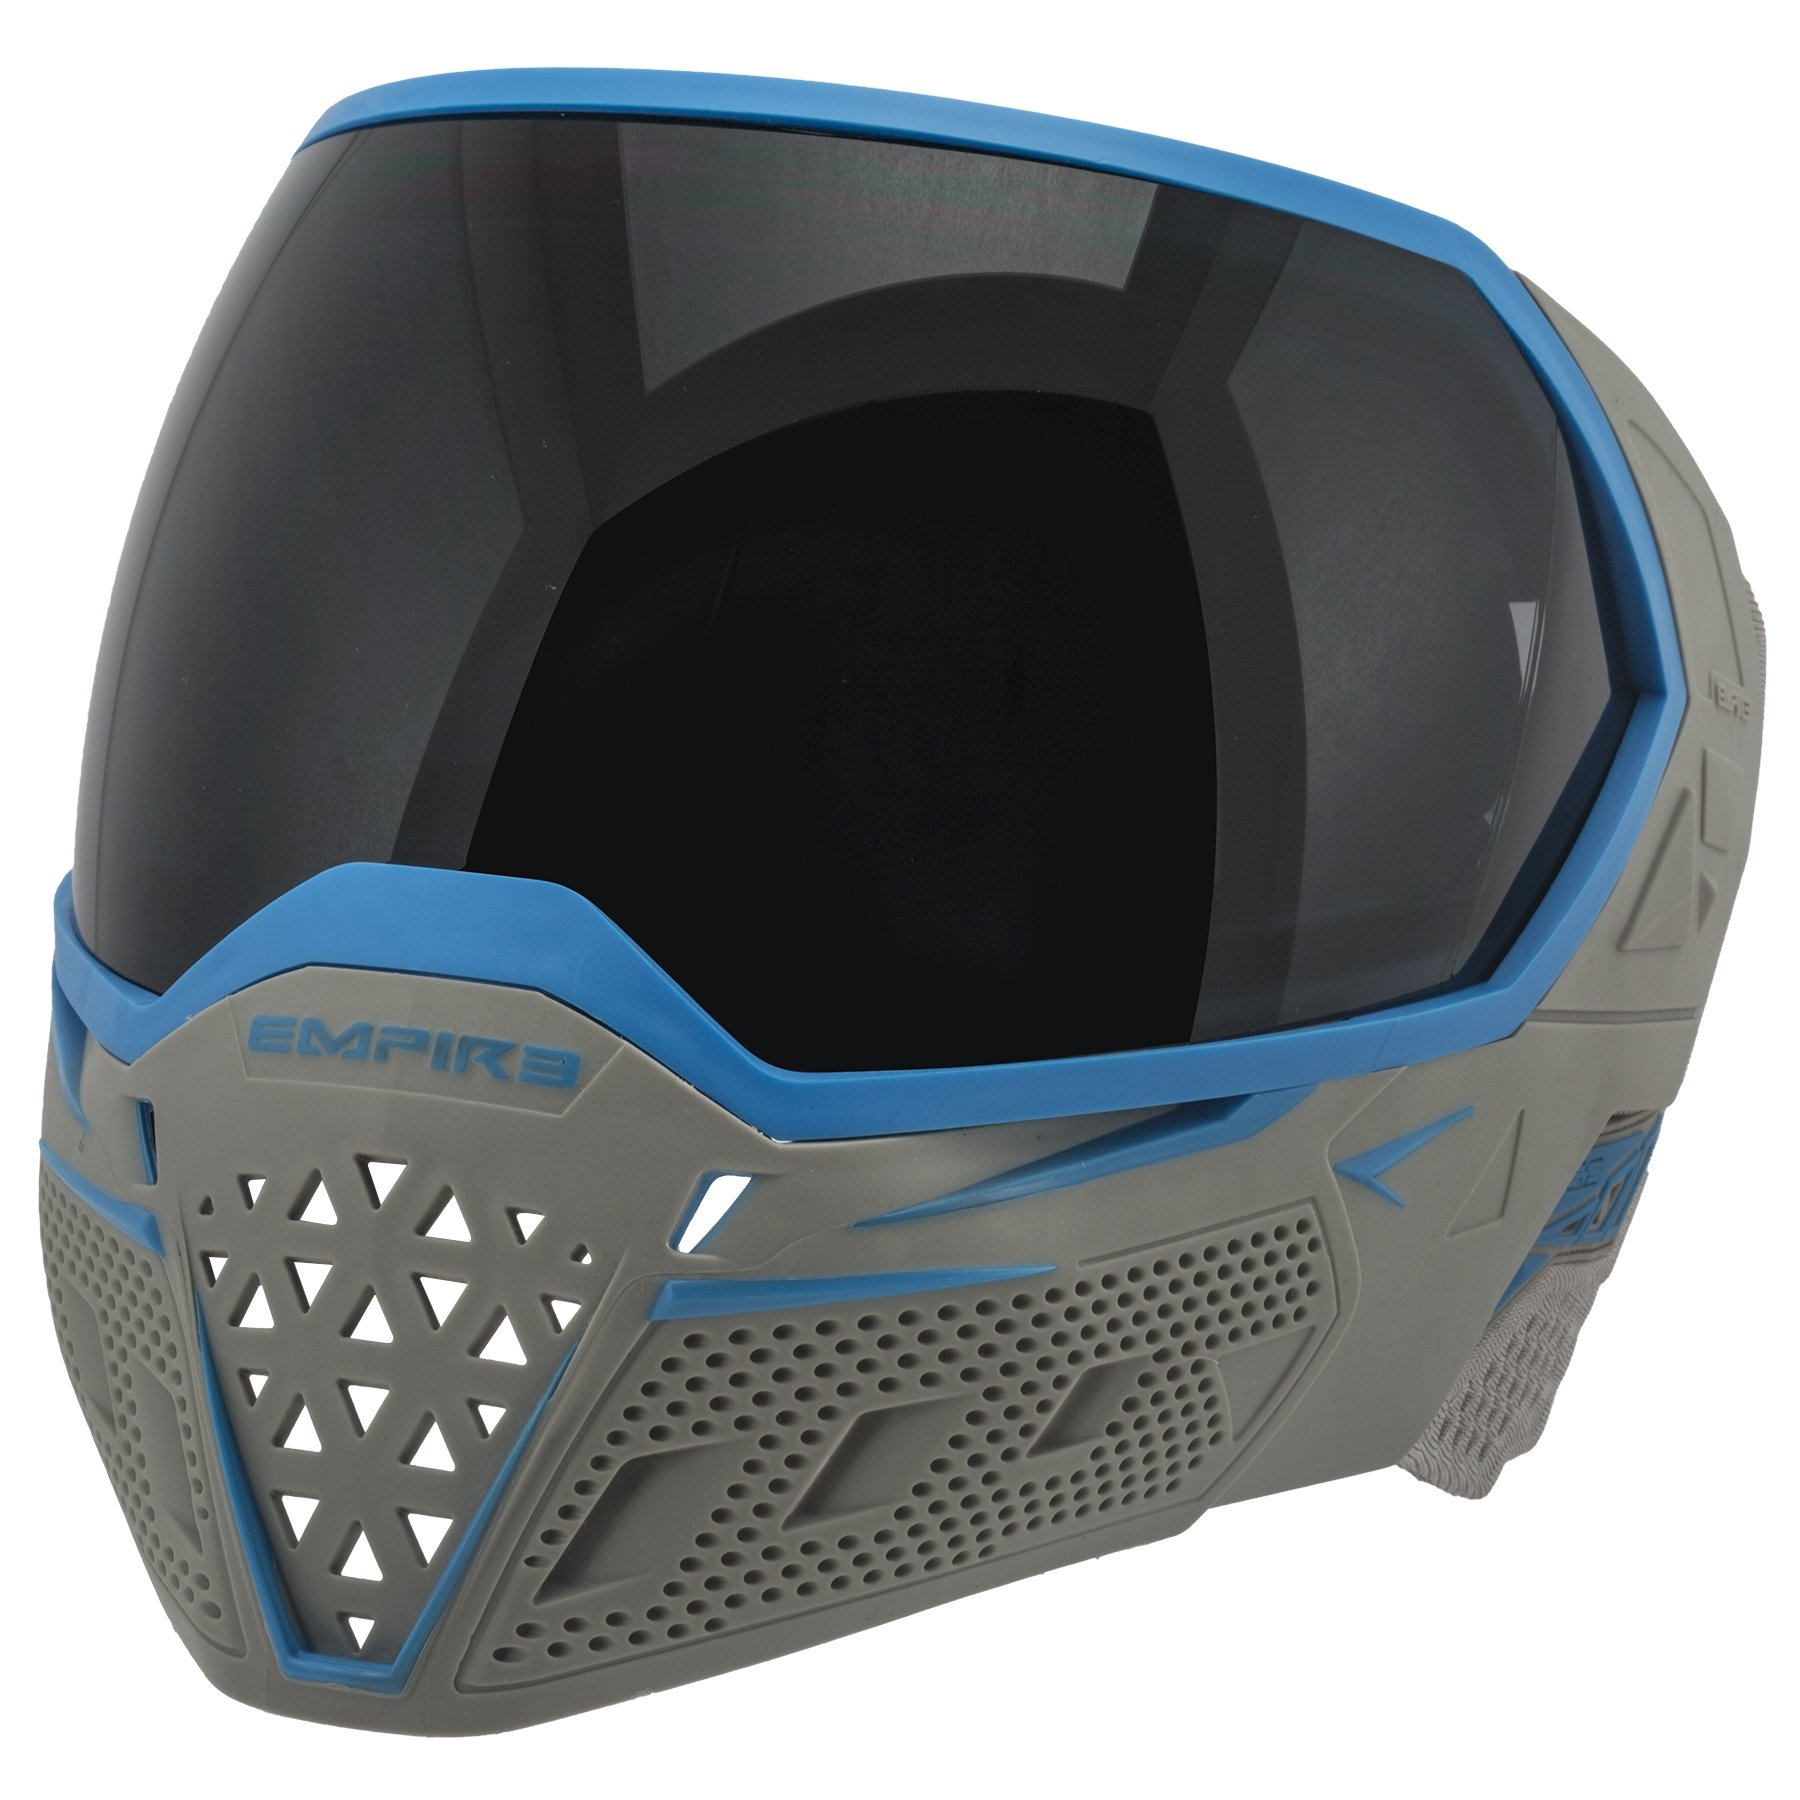 Empire EVS Thermal Paintball Goggles - Grey/Cyan by Empire